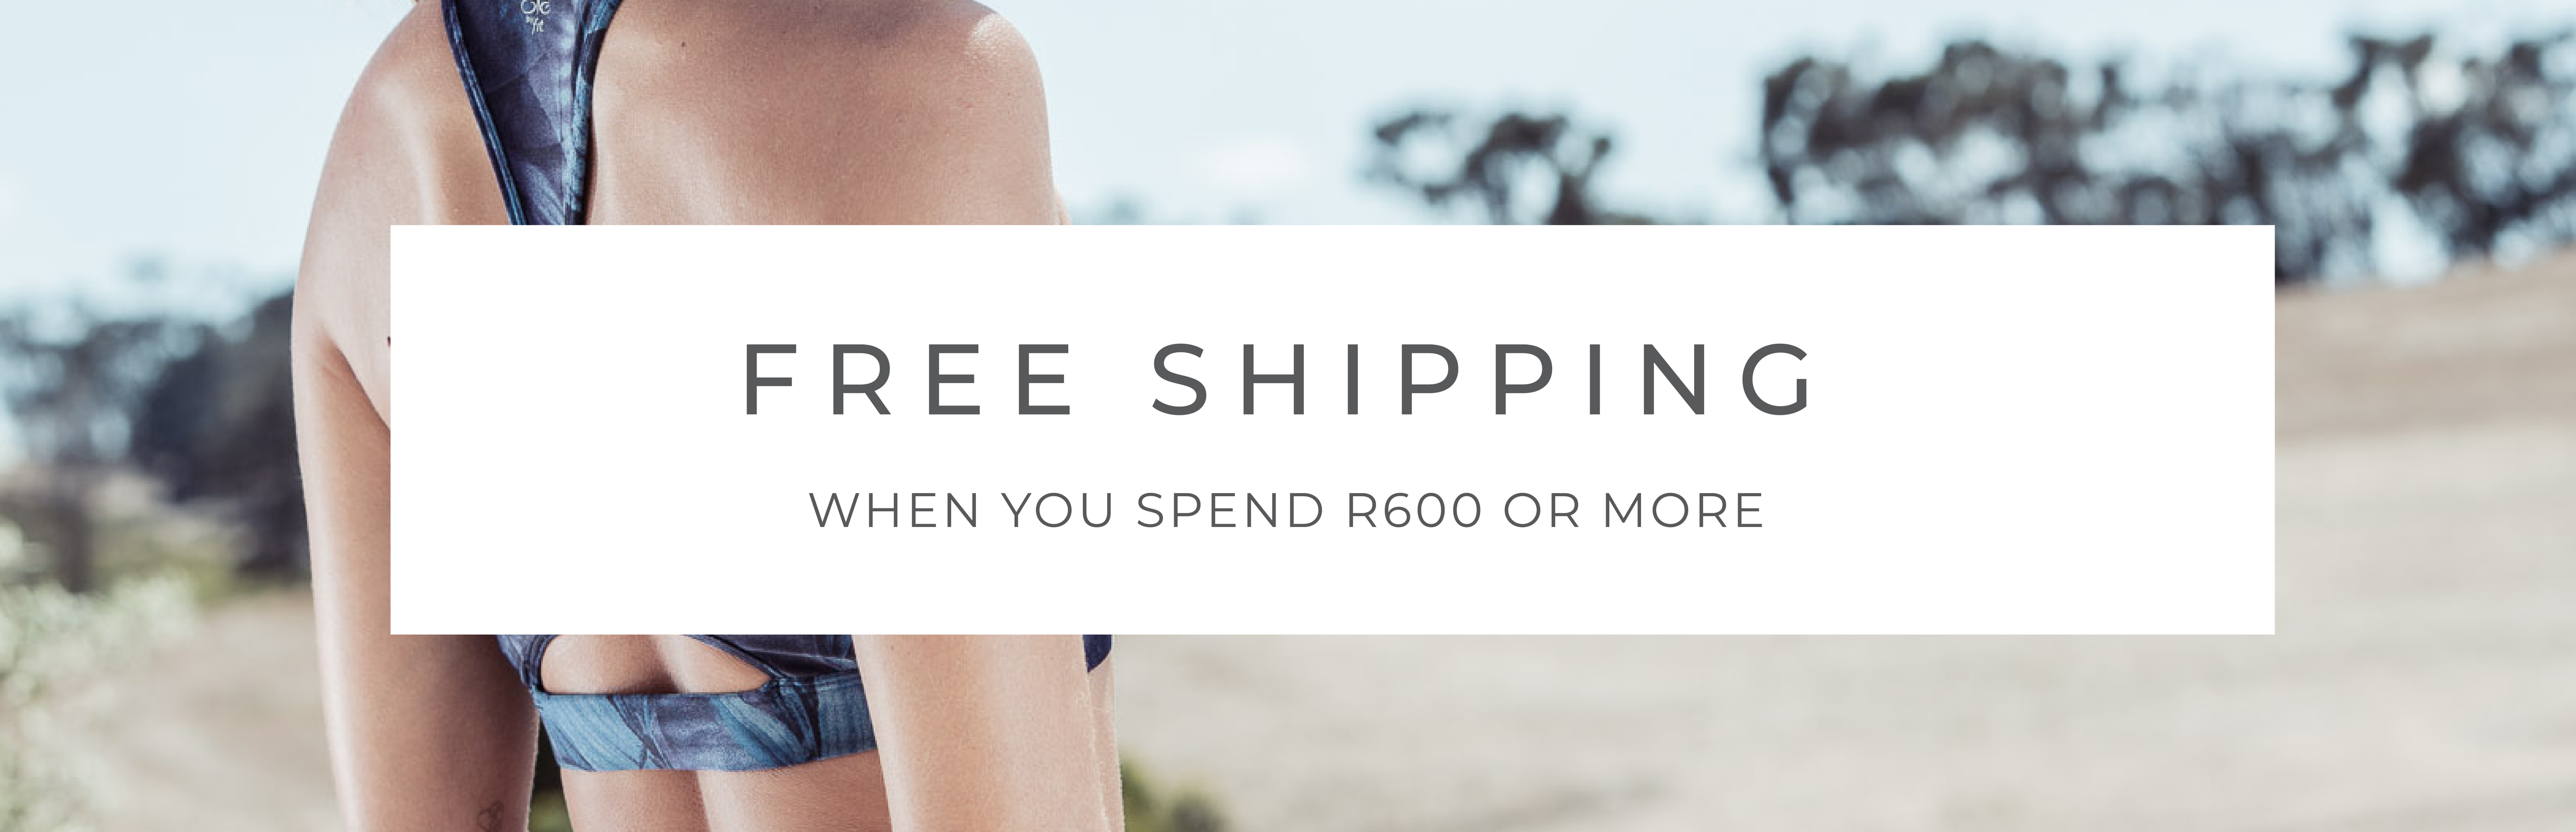 Free shipping when you spend R600 or more